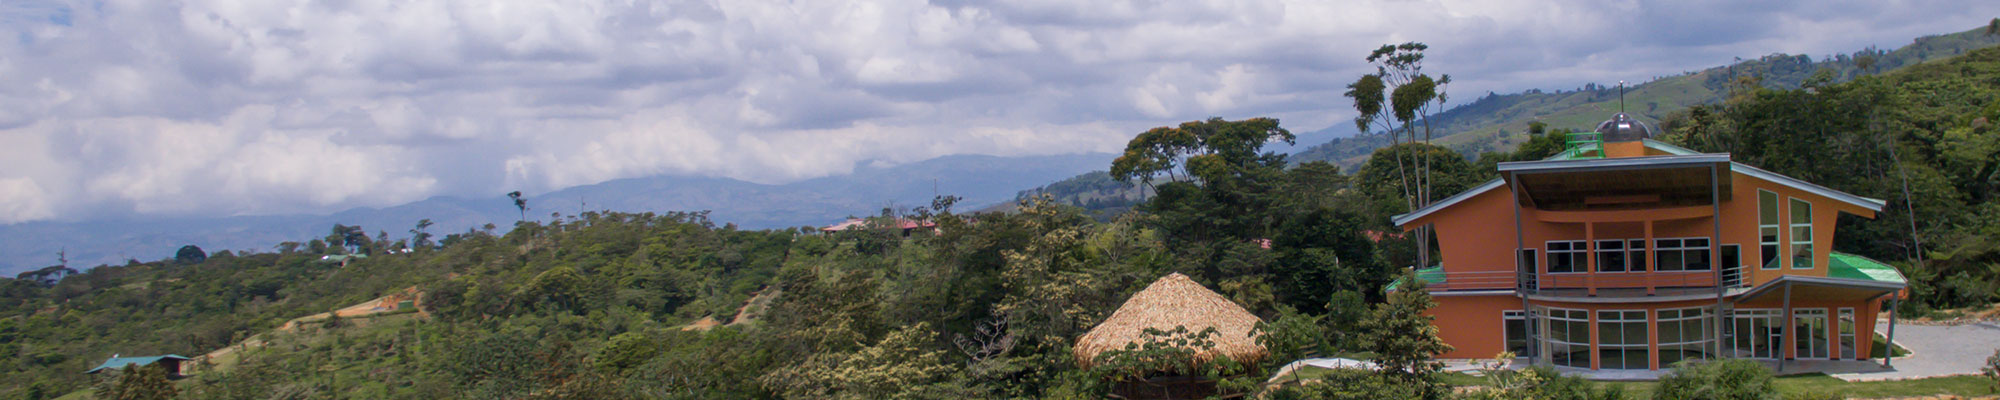 This is an image of the Lillian M Wright Centre at our EcoCampus in Costa Rica,